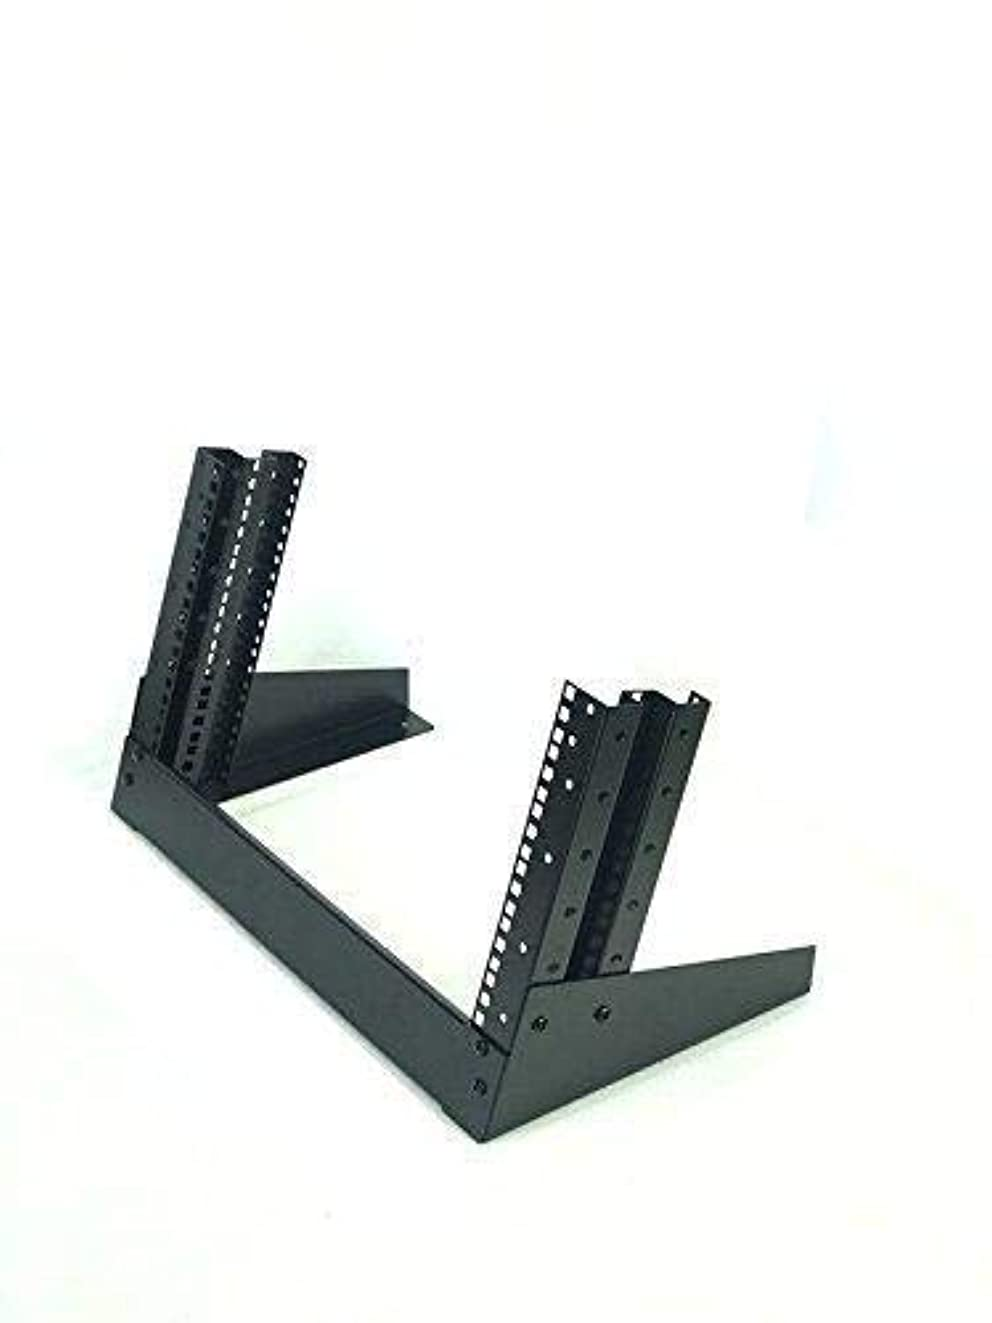 Raising 6U 8U 9U Stand Open rack Equipment fram for server networking and data system (6U)